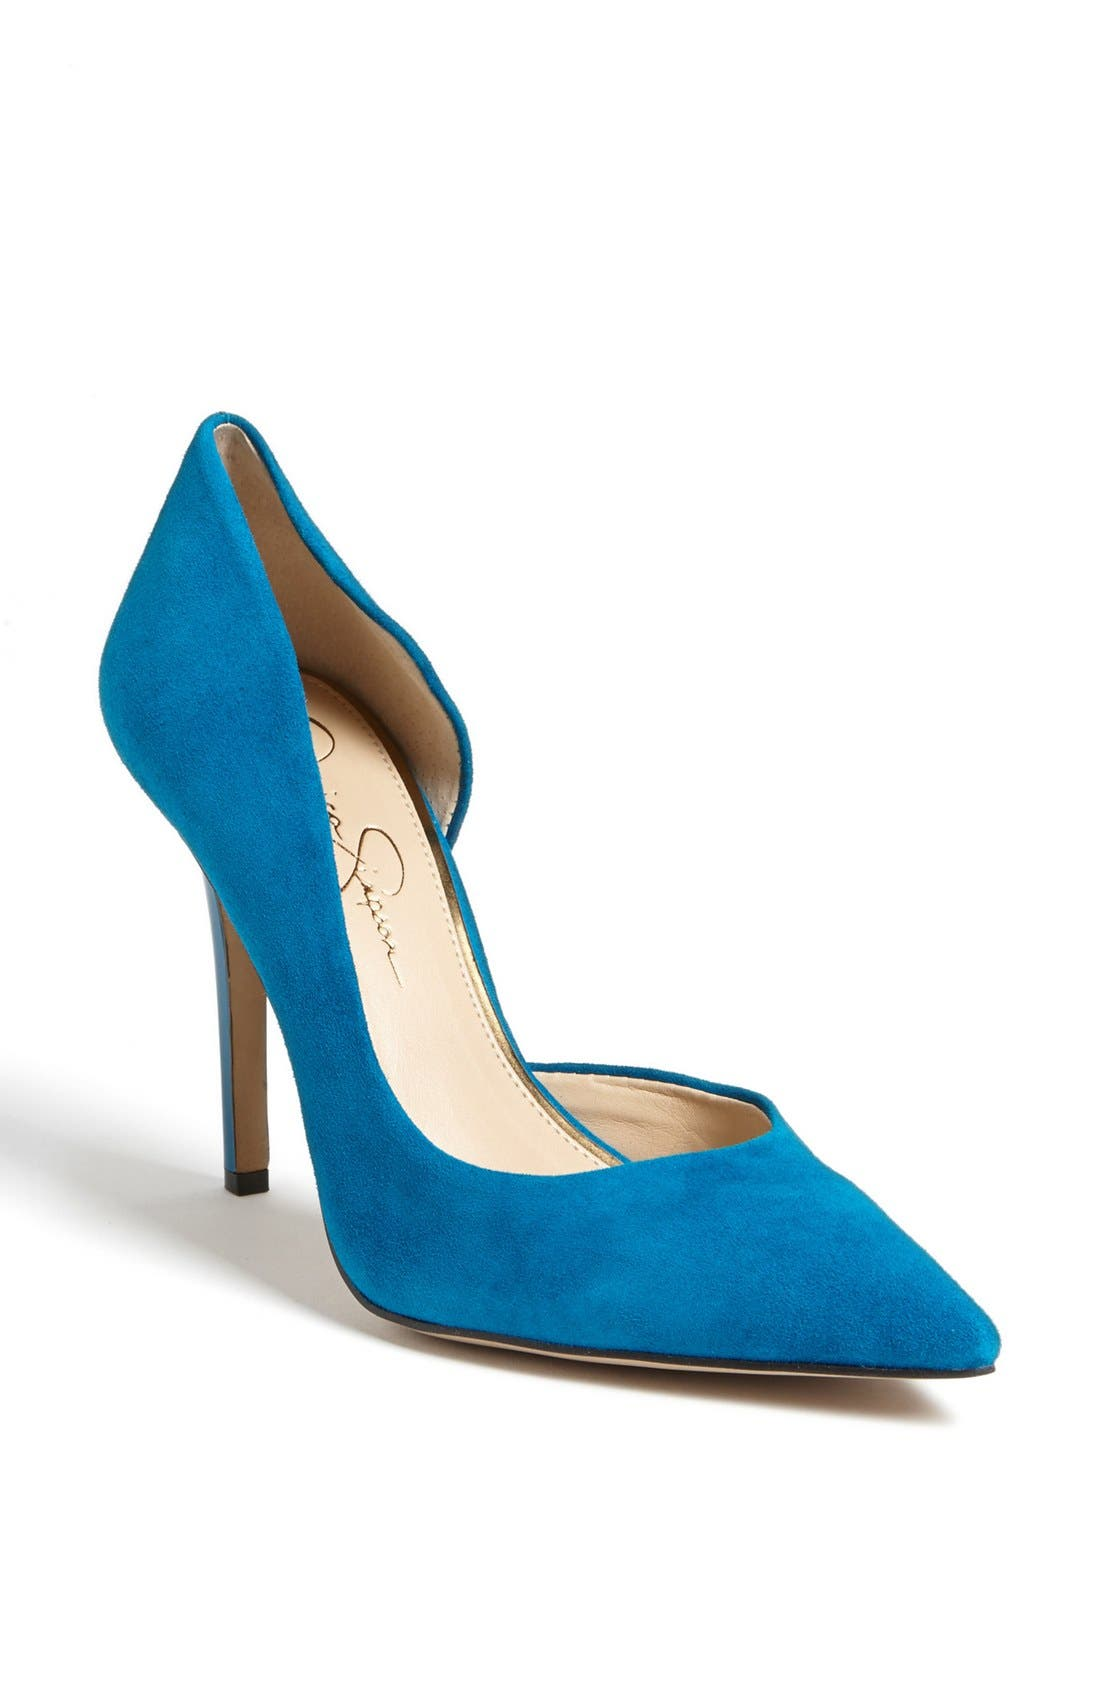 Alternate Image 1 Selected - Jessica Simpson 'Claudette' Pump